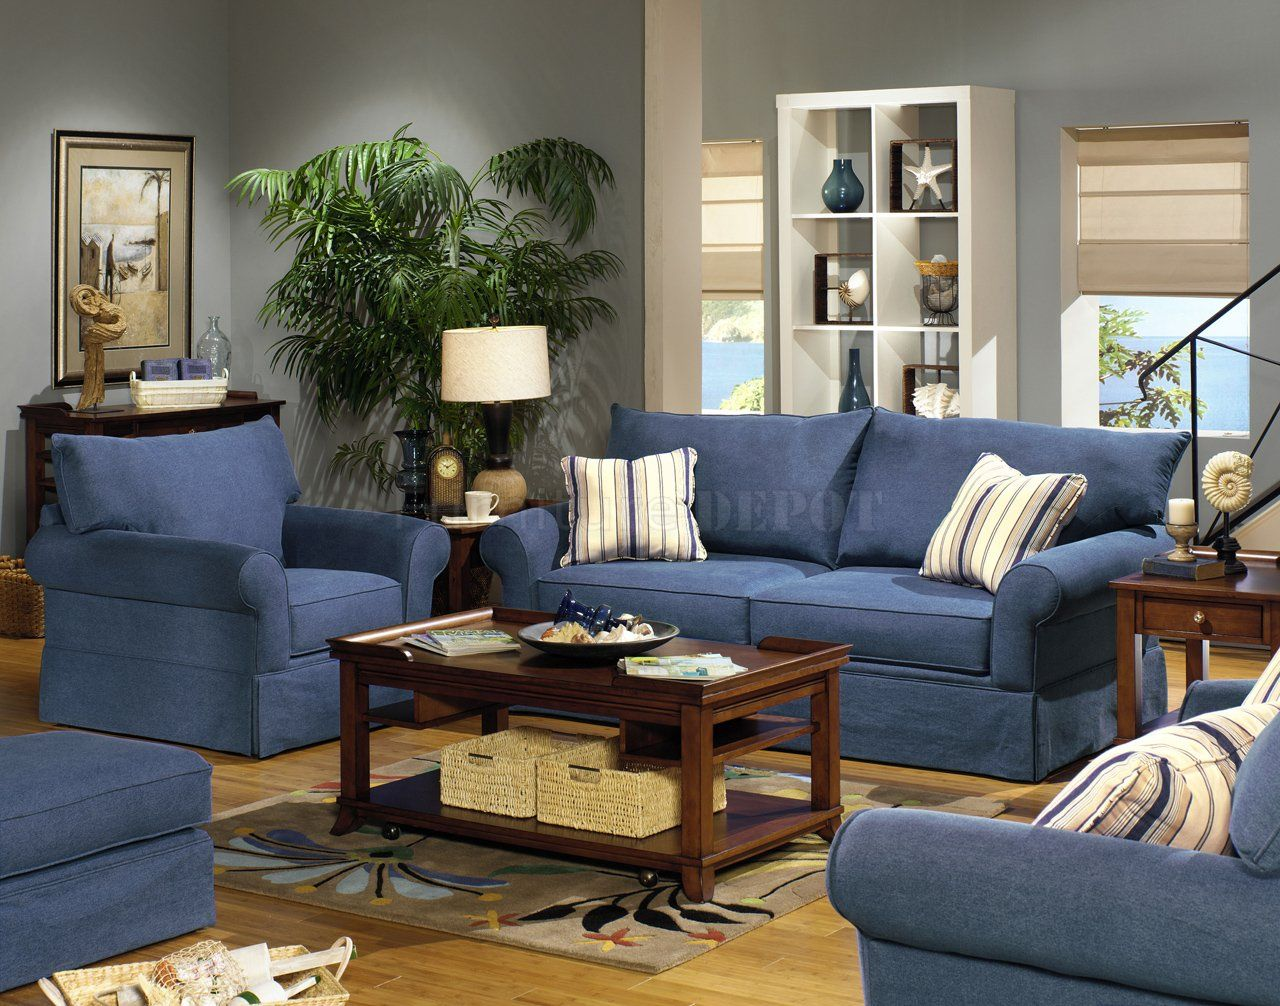 Living Room Sets Raleigh Nc living room sets raleigh nc – modern house